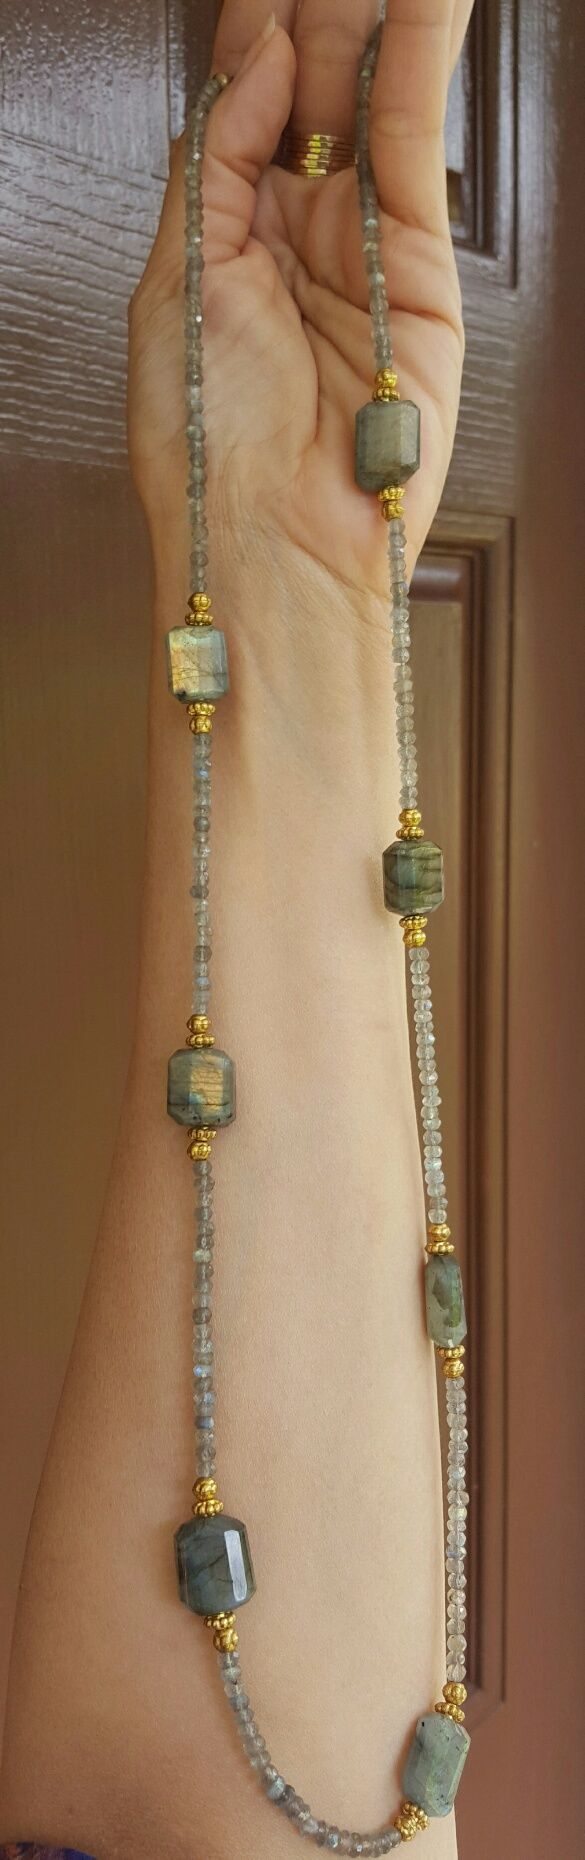 """Faceted Labradorite Necklace./Why can't the """"findings"""" be gold and silver? Gold first then silver or just the opposite."""